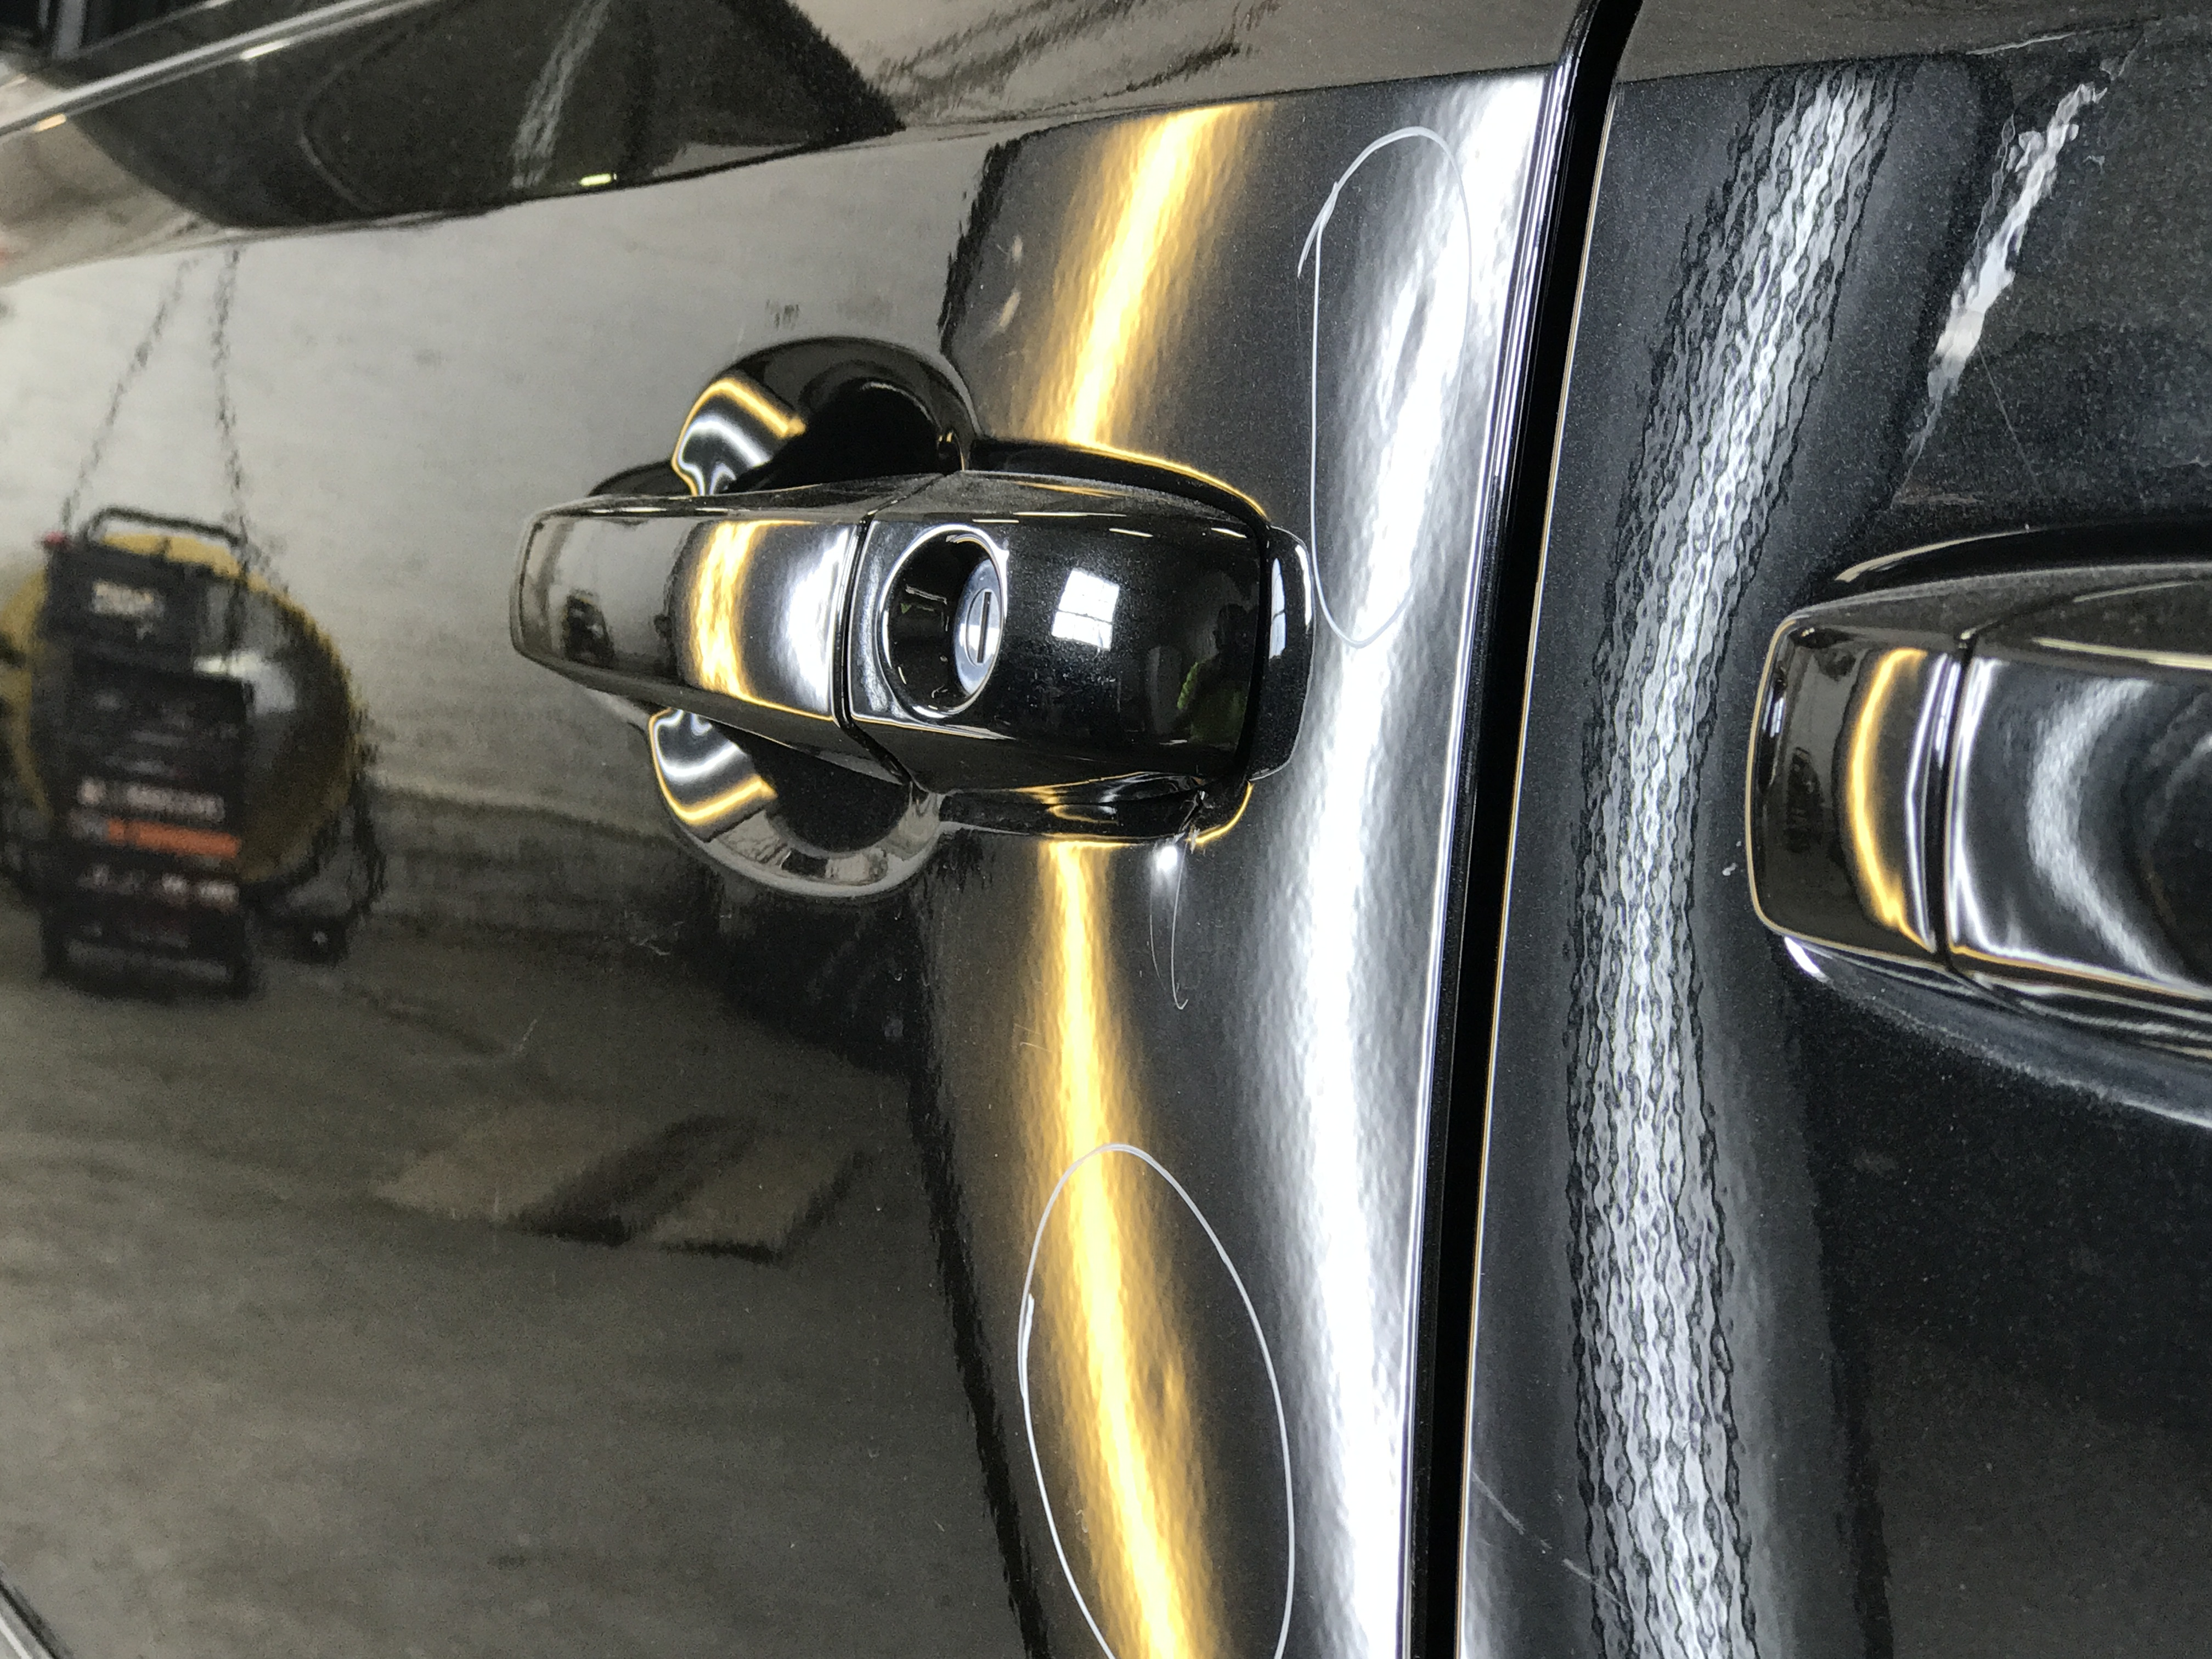 2016 Chrysler Town & Country, Dent removal. Http://217dent.com Before Image